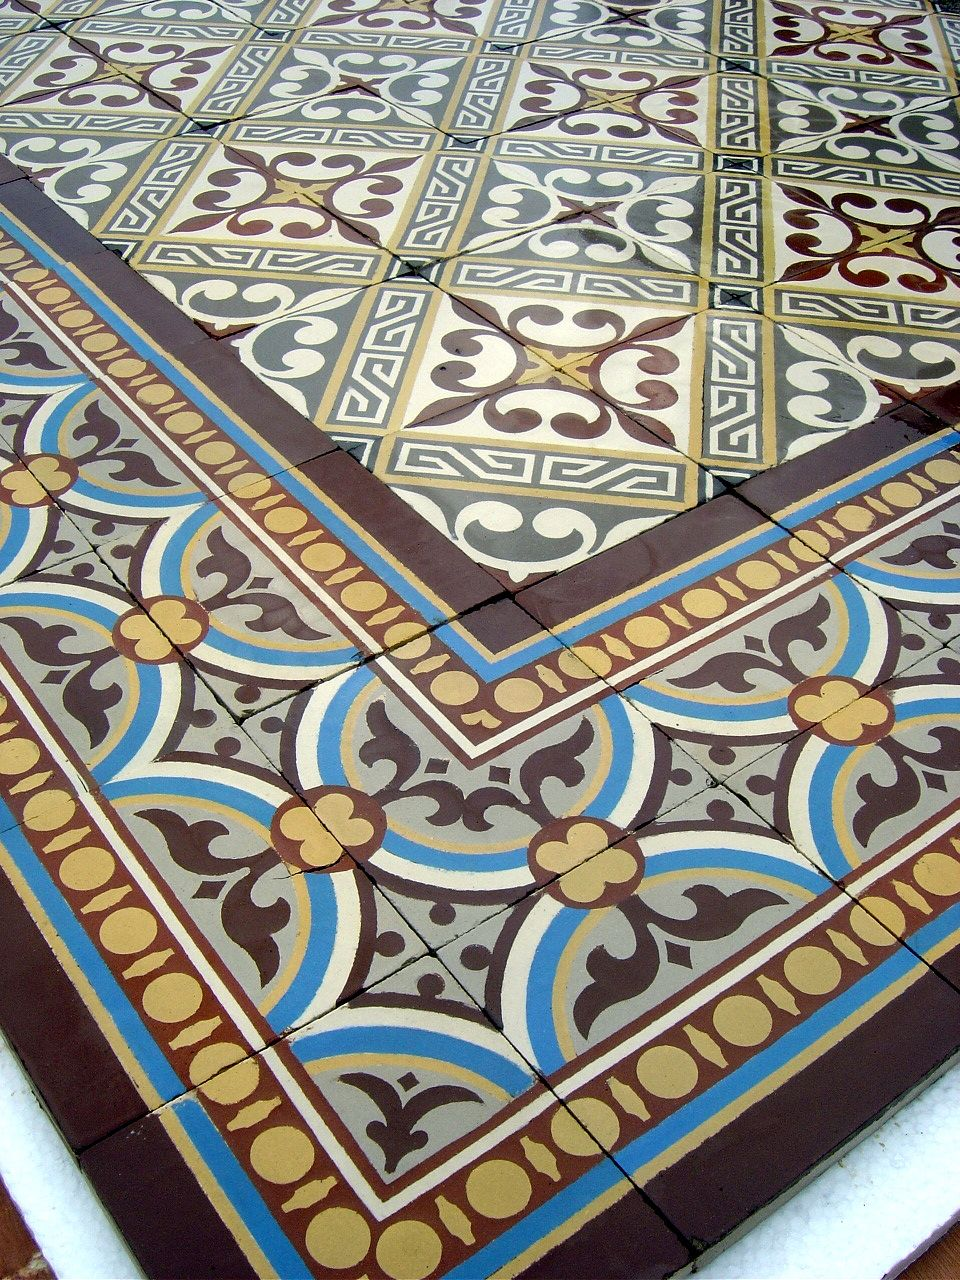 13 5m2 Antique French Ceramic Floor Complete With Double